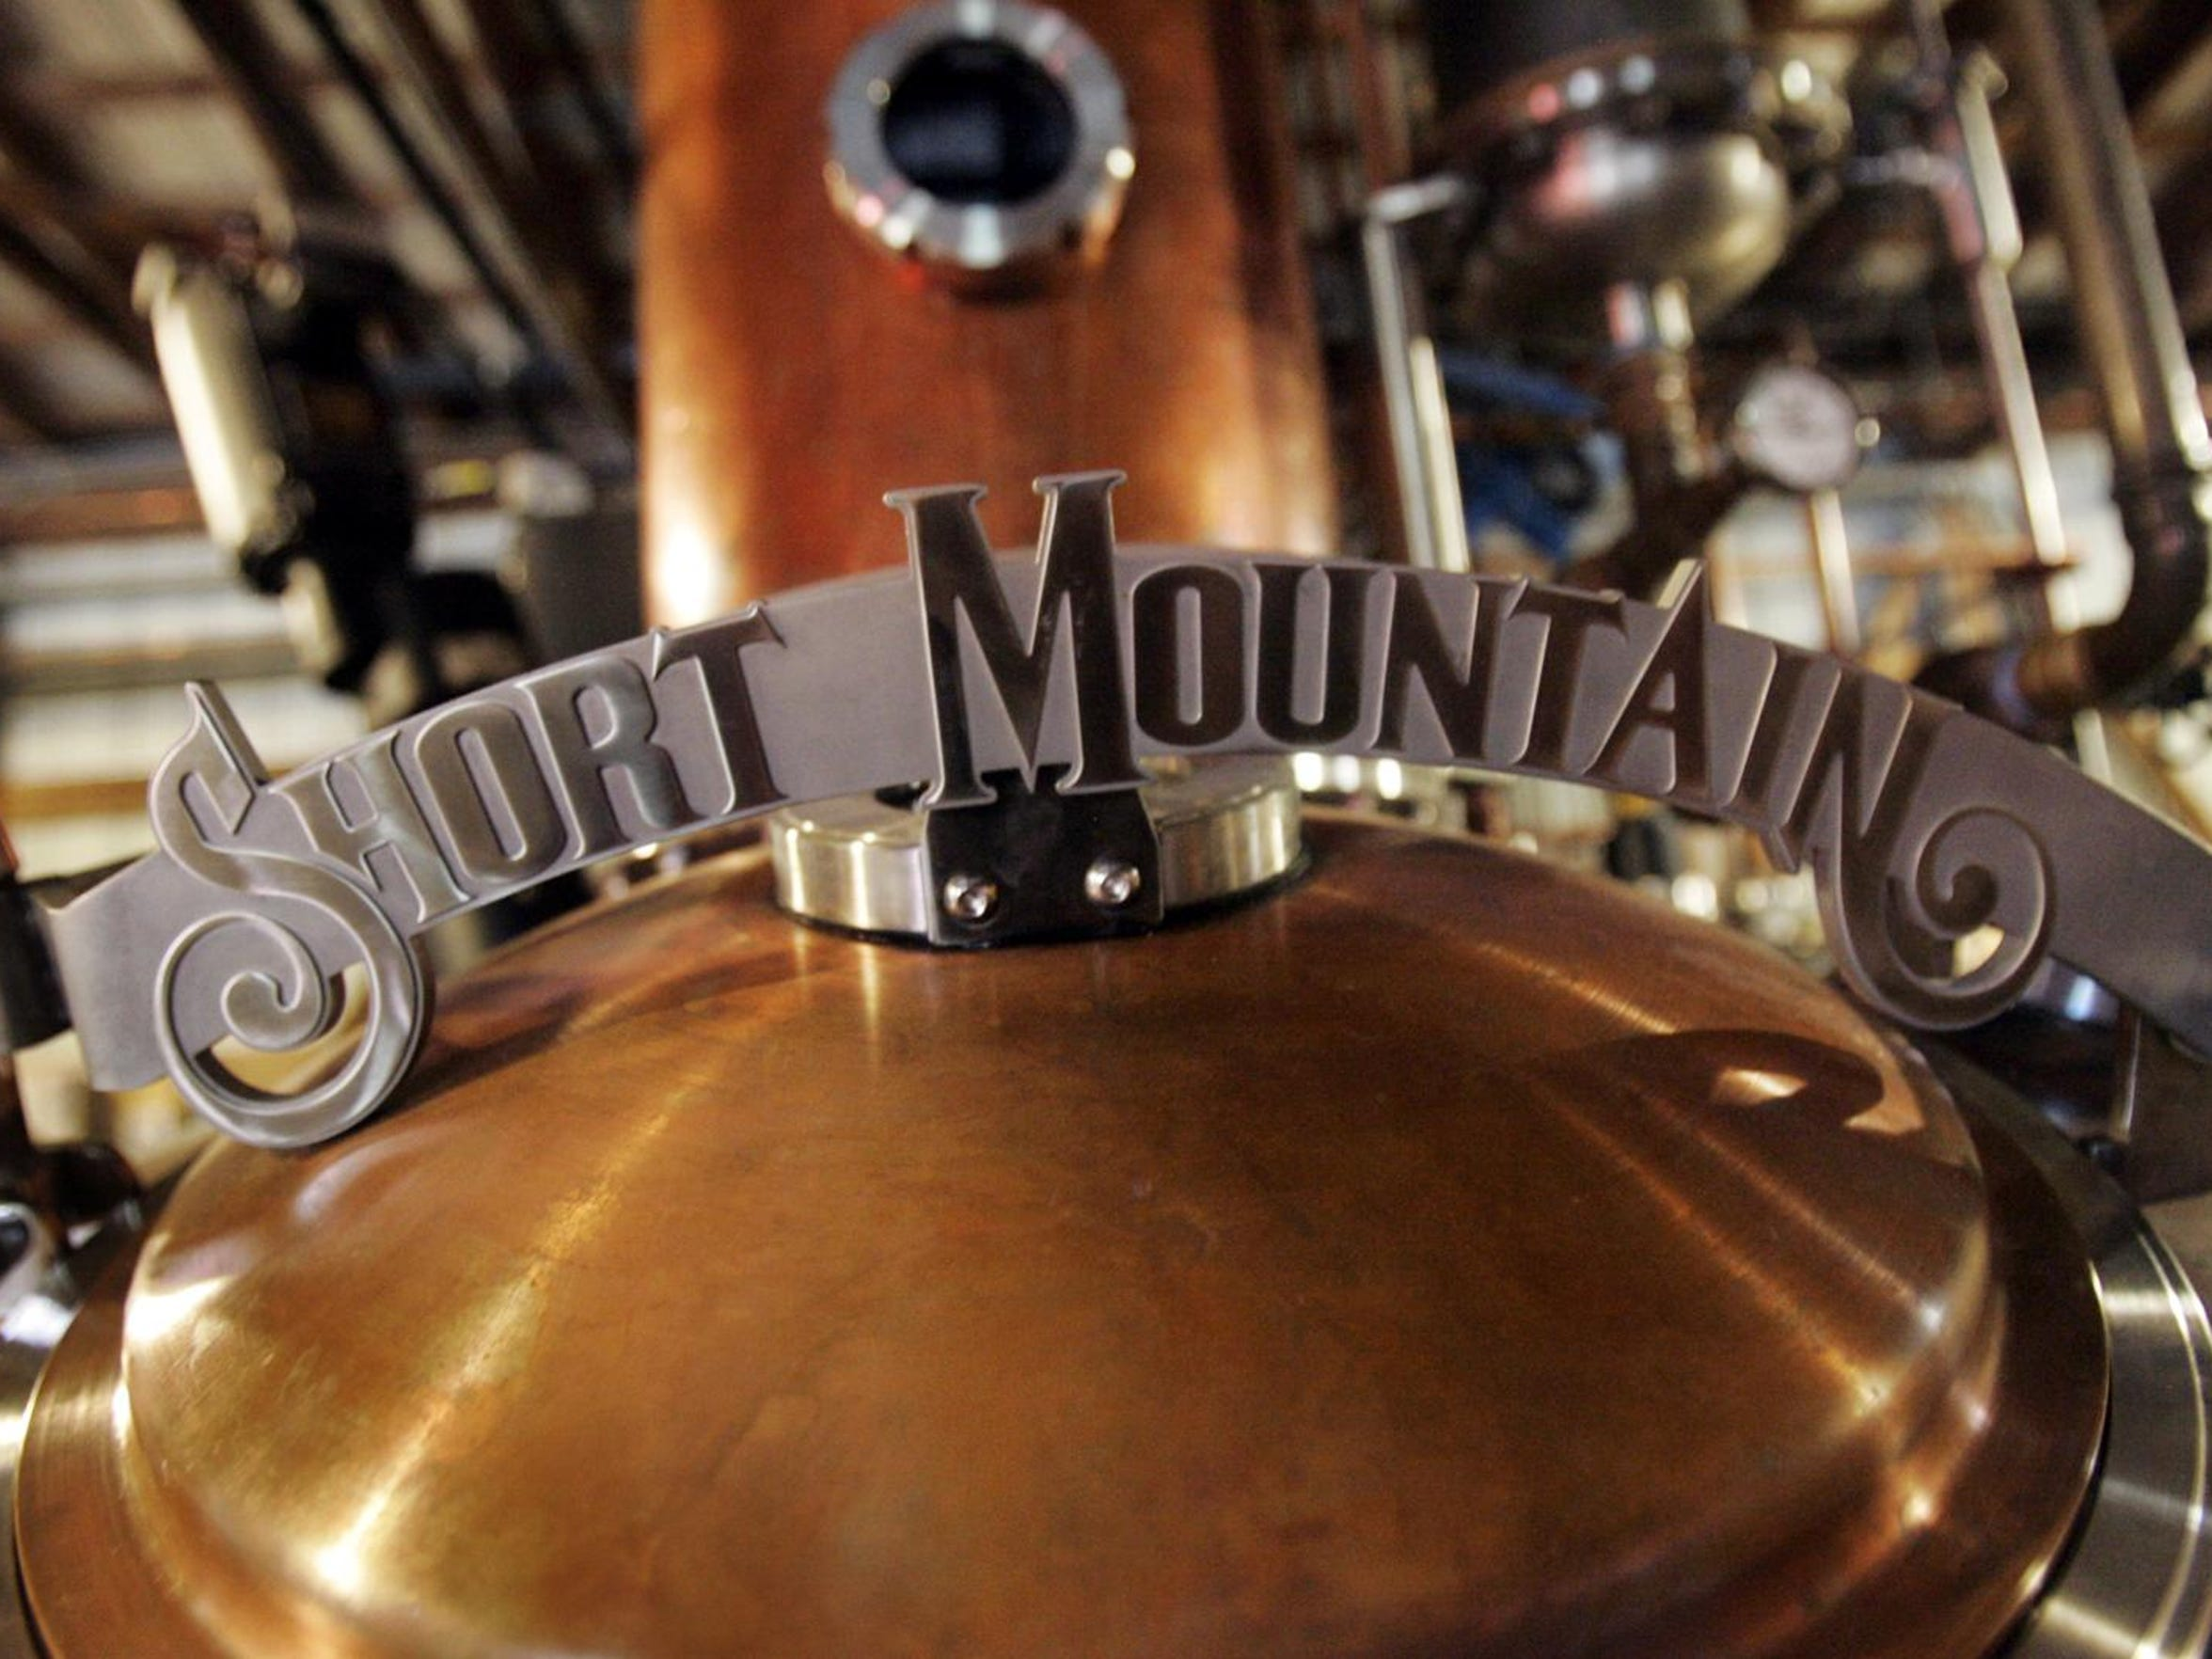 Short Mountain Distillery?s new copper kettle brews ?the best moonshine ever made, made even better,? says Billy Kaufman, president and CEO of the facility. John A. Gillis/DNJ Short Mountain Distillery, Oct. 18, 2012.